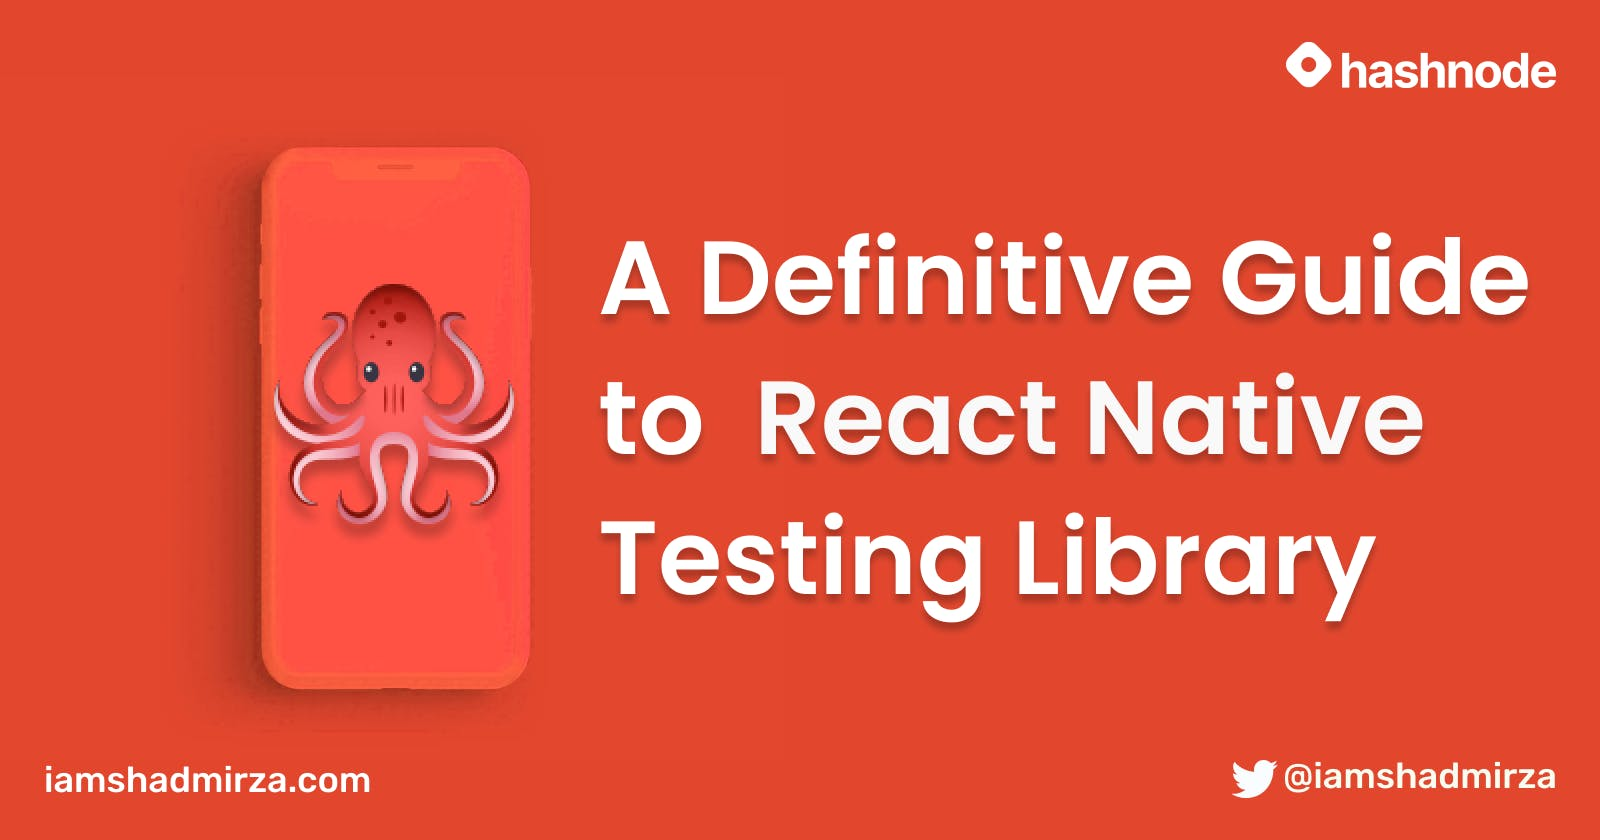 A Definitive Guide to React Native Testing Library